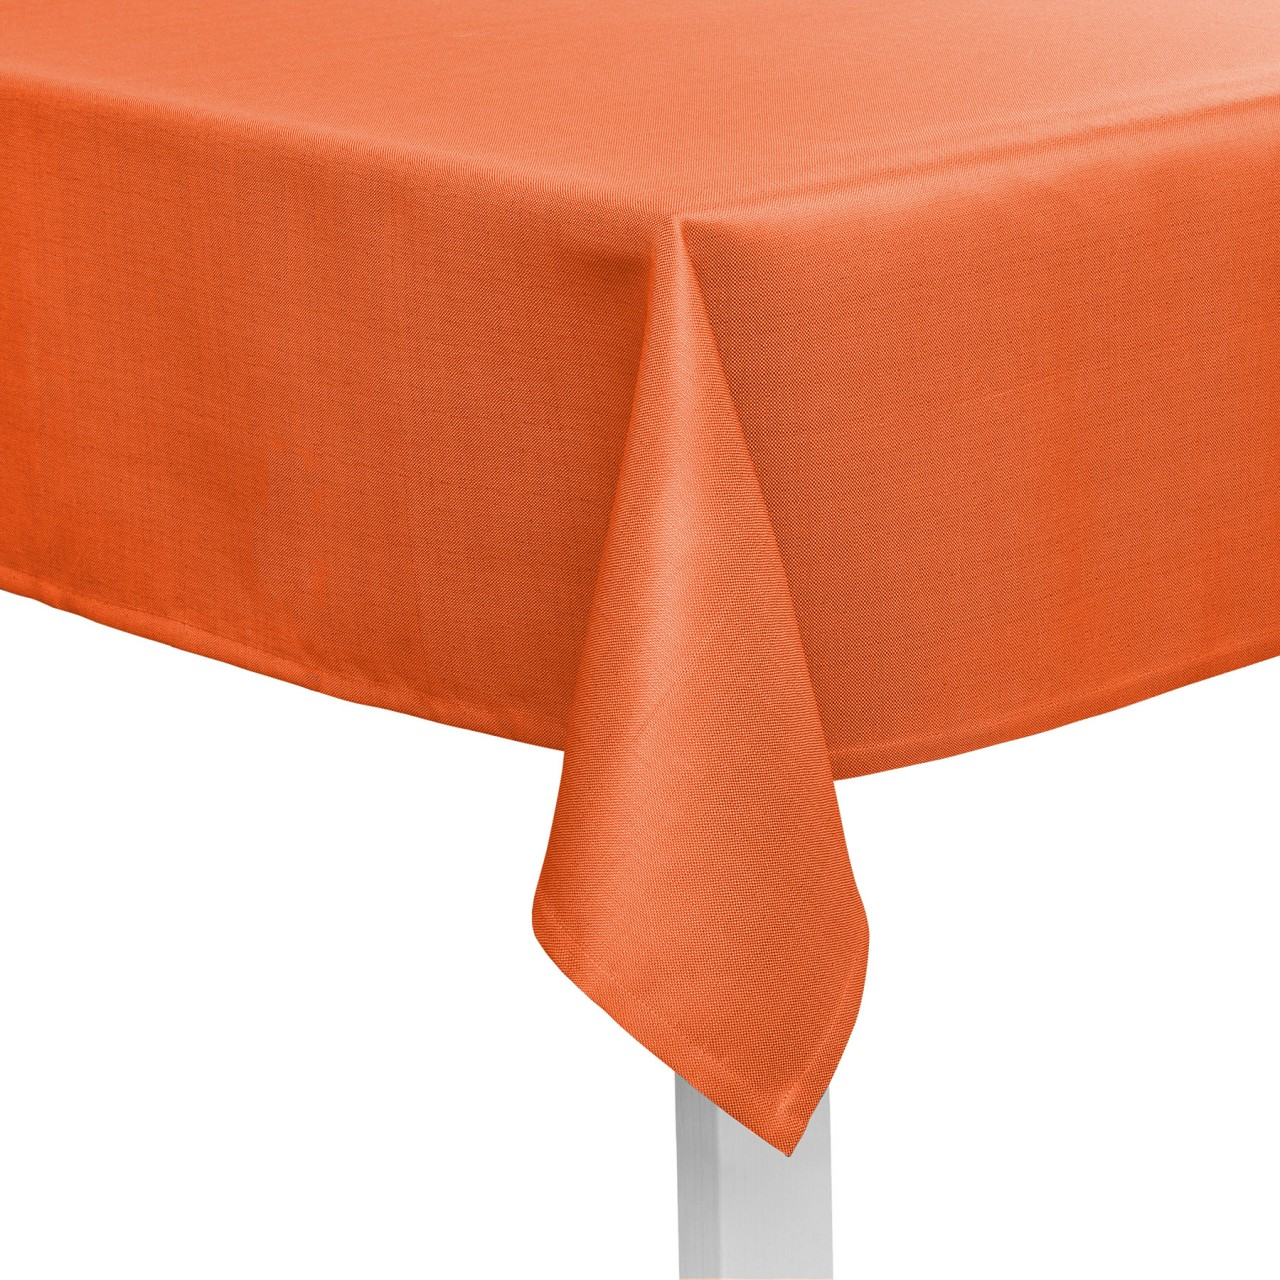 Viva Tischdecke orange